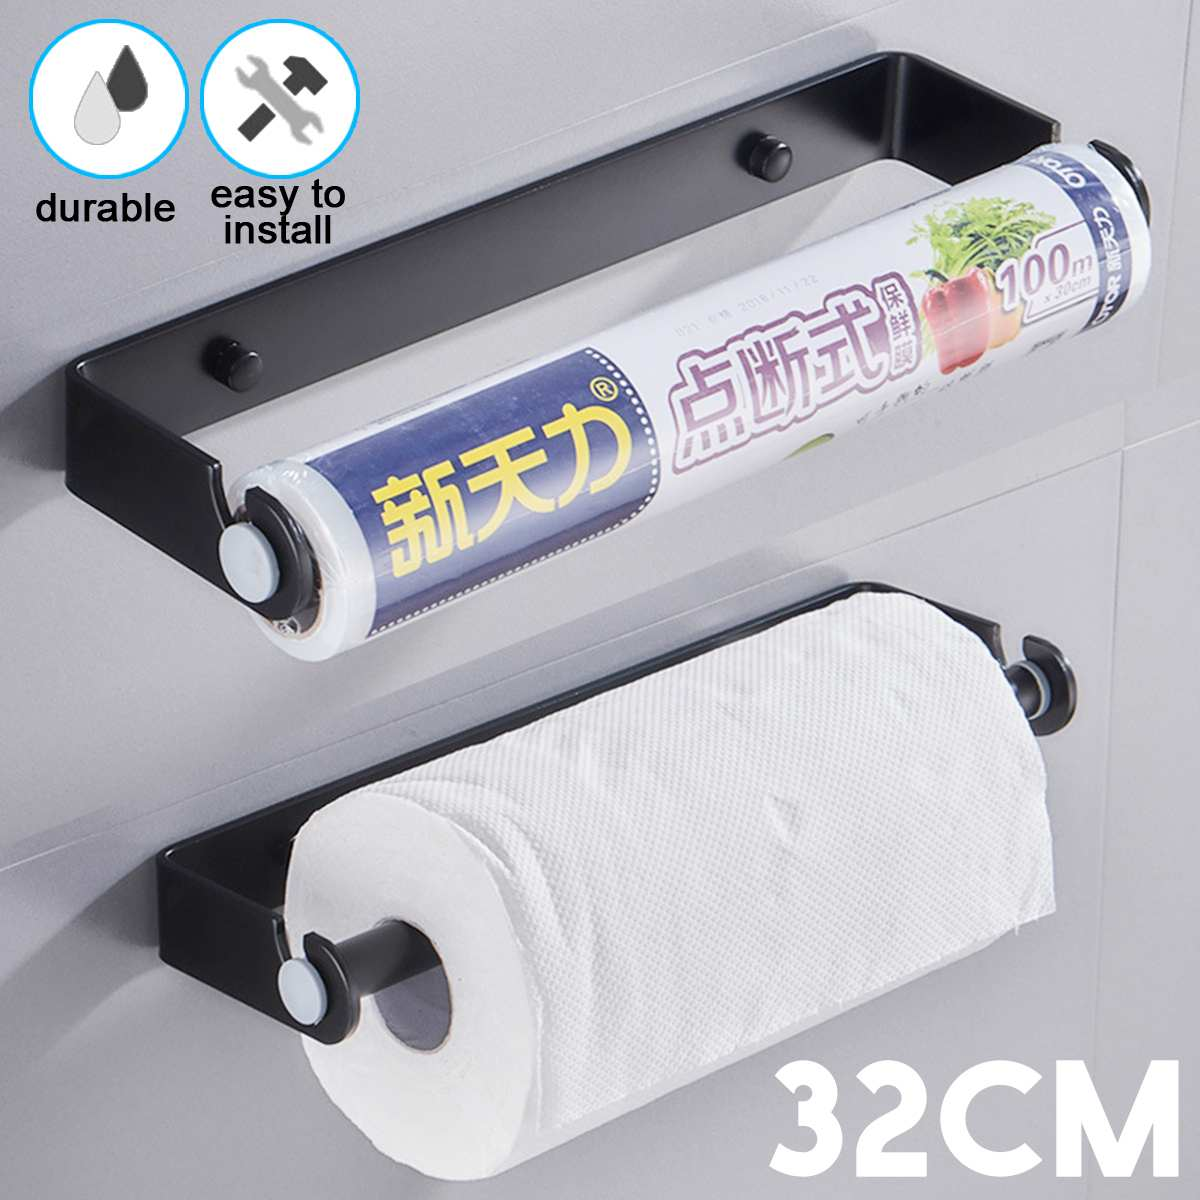 Space Aluminum Kitchen Paper Holder Under Cabinet Wall Mount Hanging Roll Rack Multi-use Bathroom Towel Rack Toilet Paper Holder